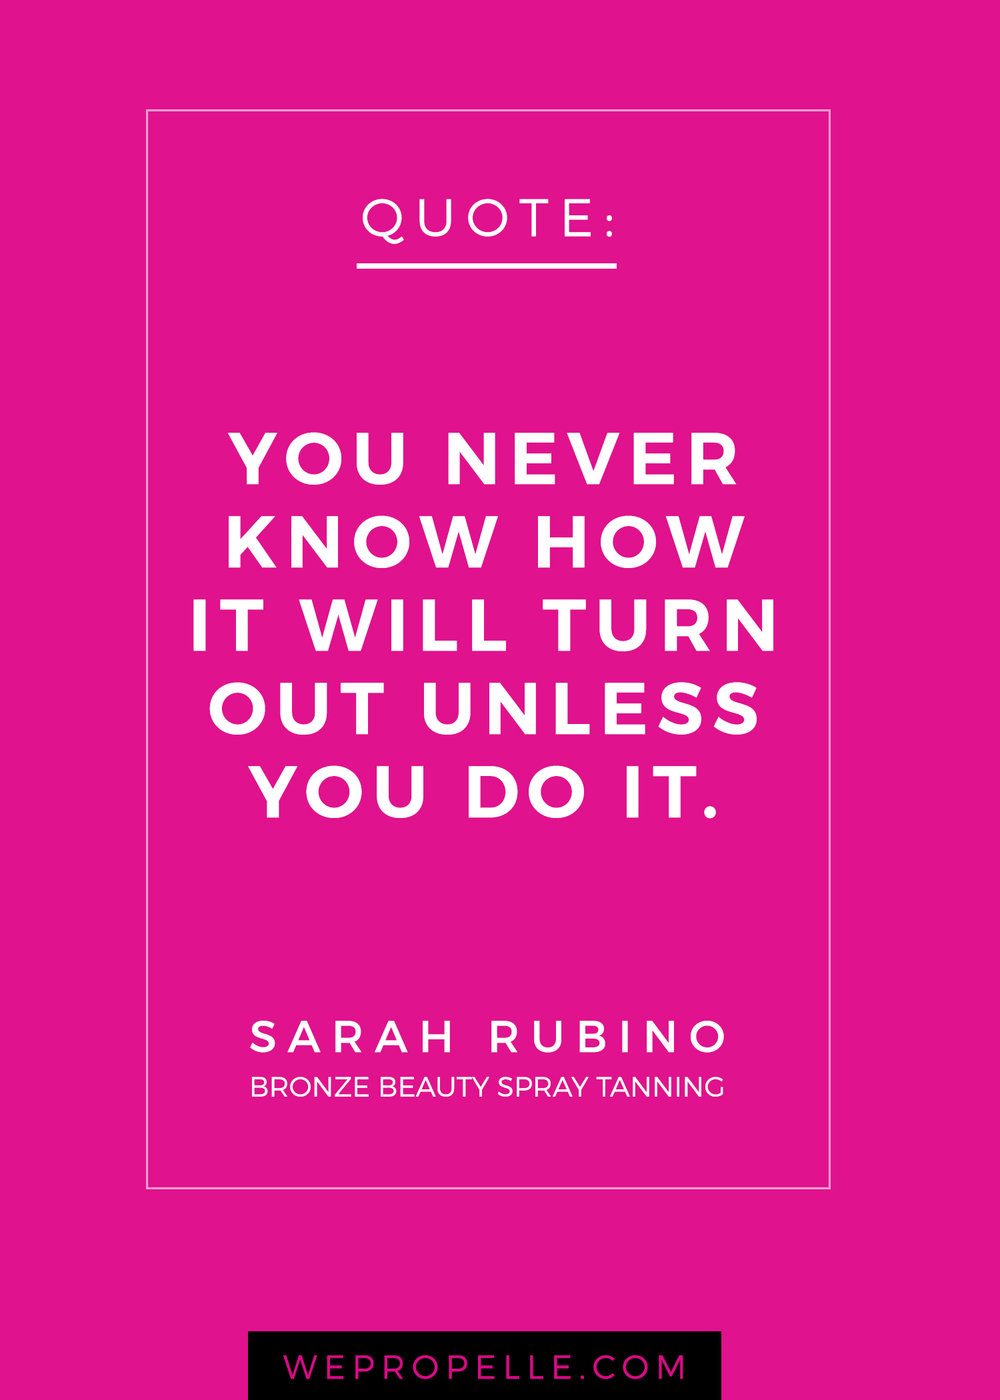 """You never know how it will turn out unless you do it."" Sarah Rubino"